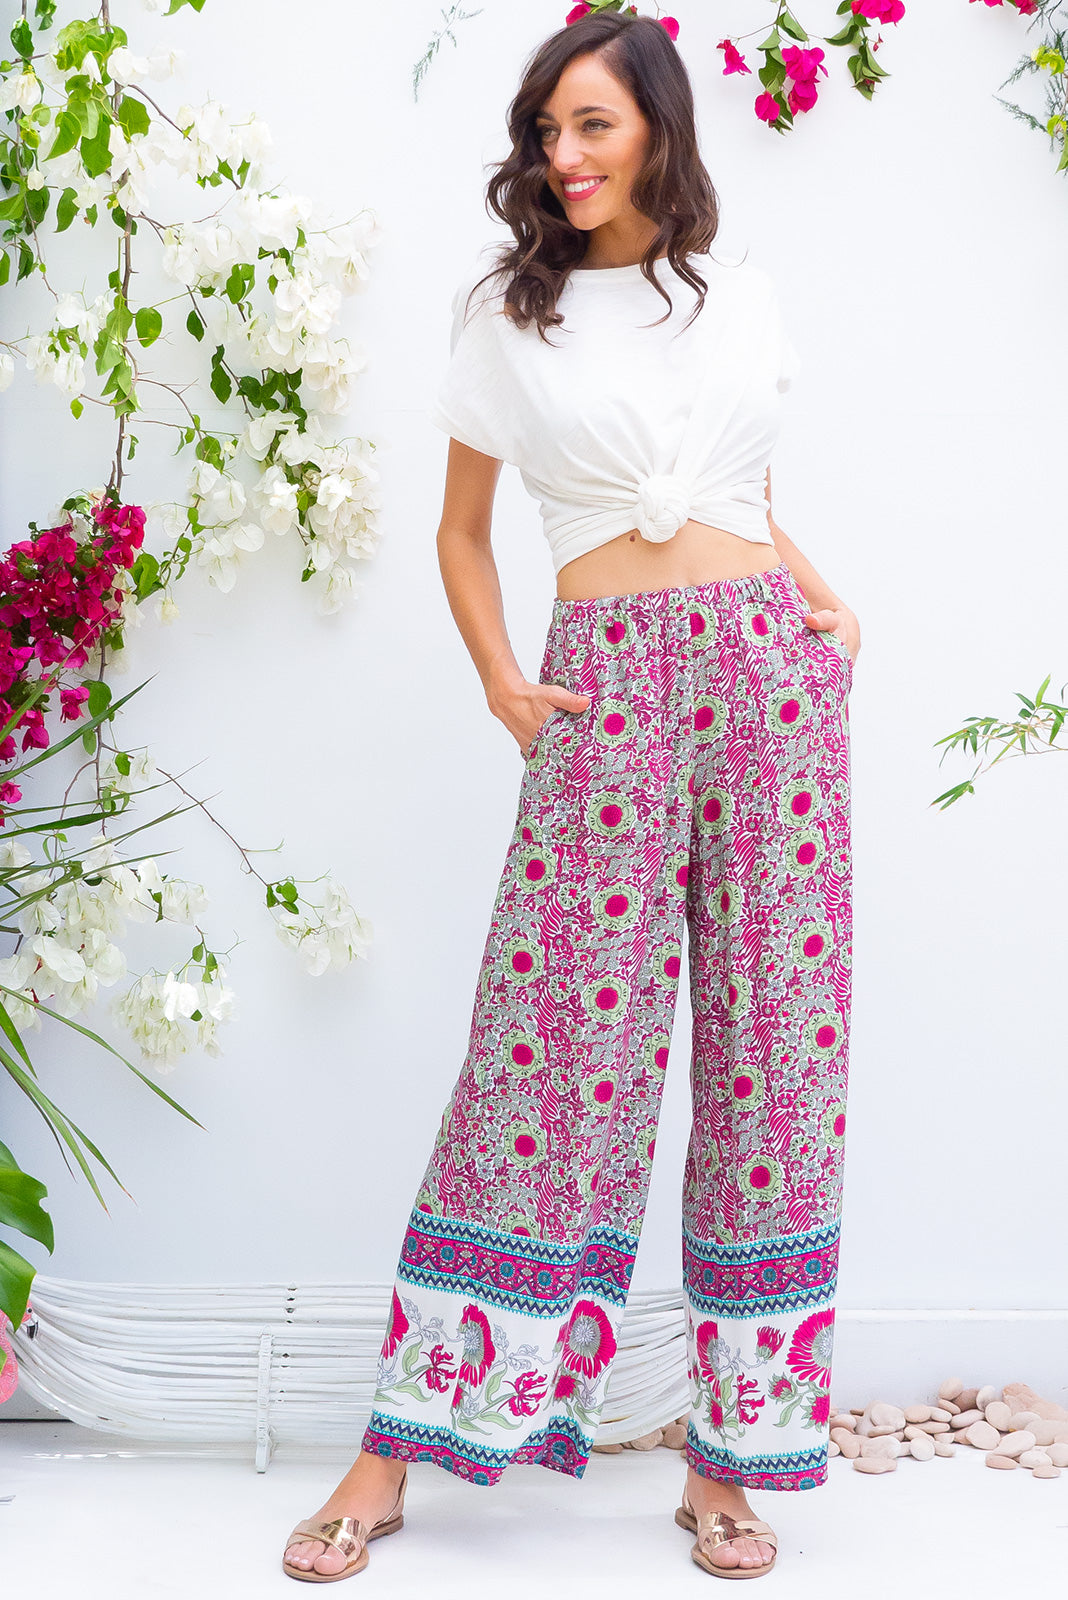 Traveller pants raspberry are wide leg pants with an elastic waist, deep pockets and they feature a gorgeous Moroccan boho inspired border print woven rayon